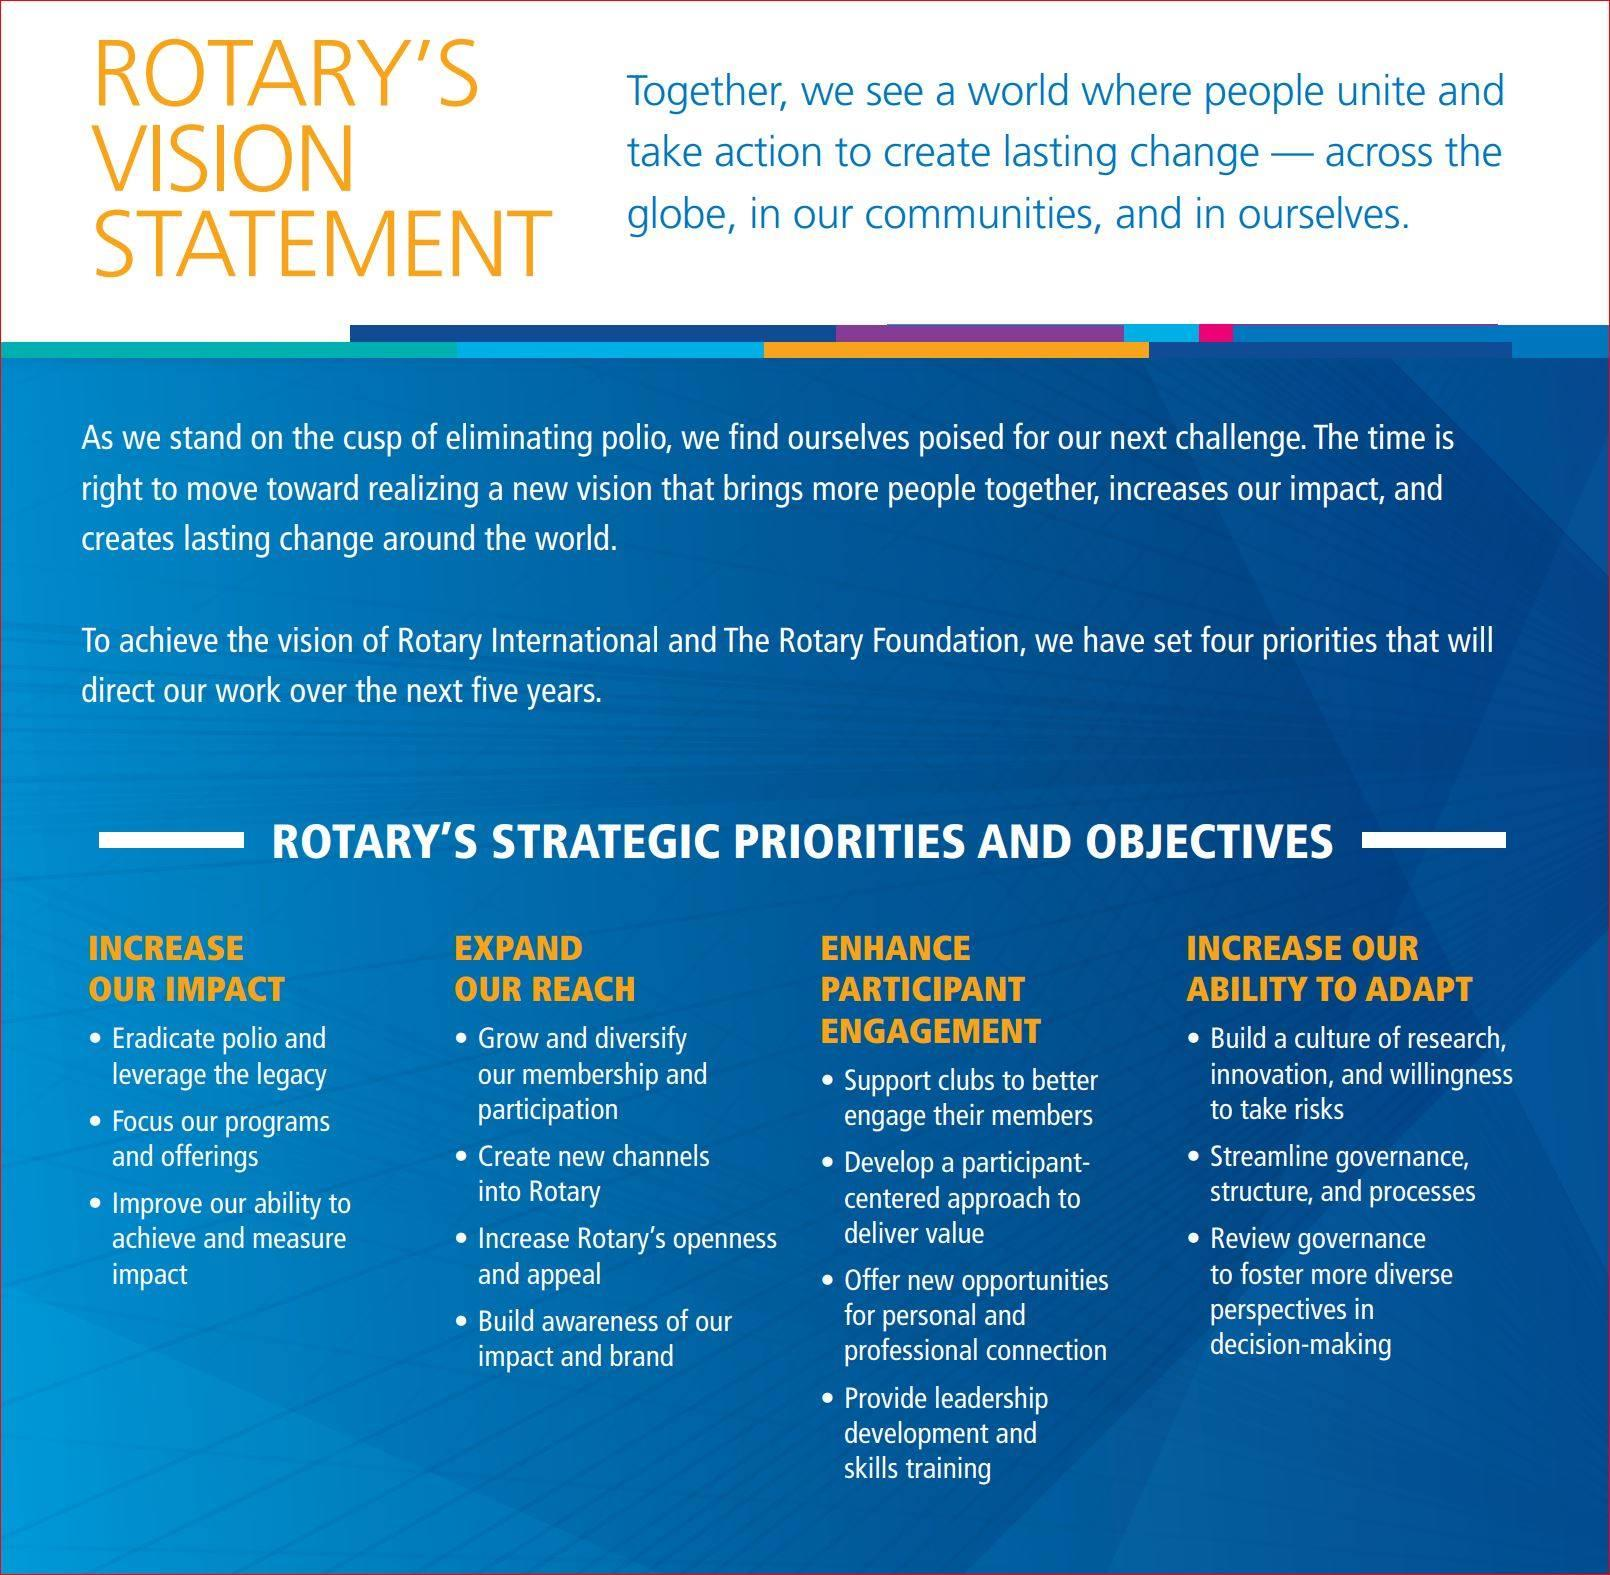 Rotary's Vision and Strategic Priorities and Objectives.